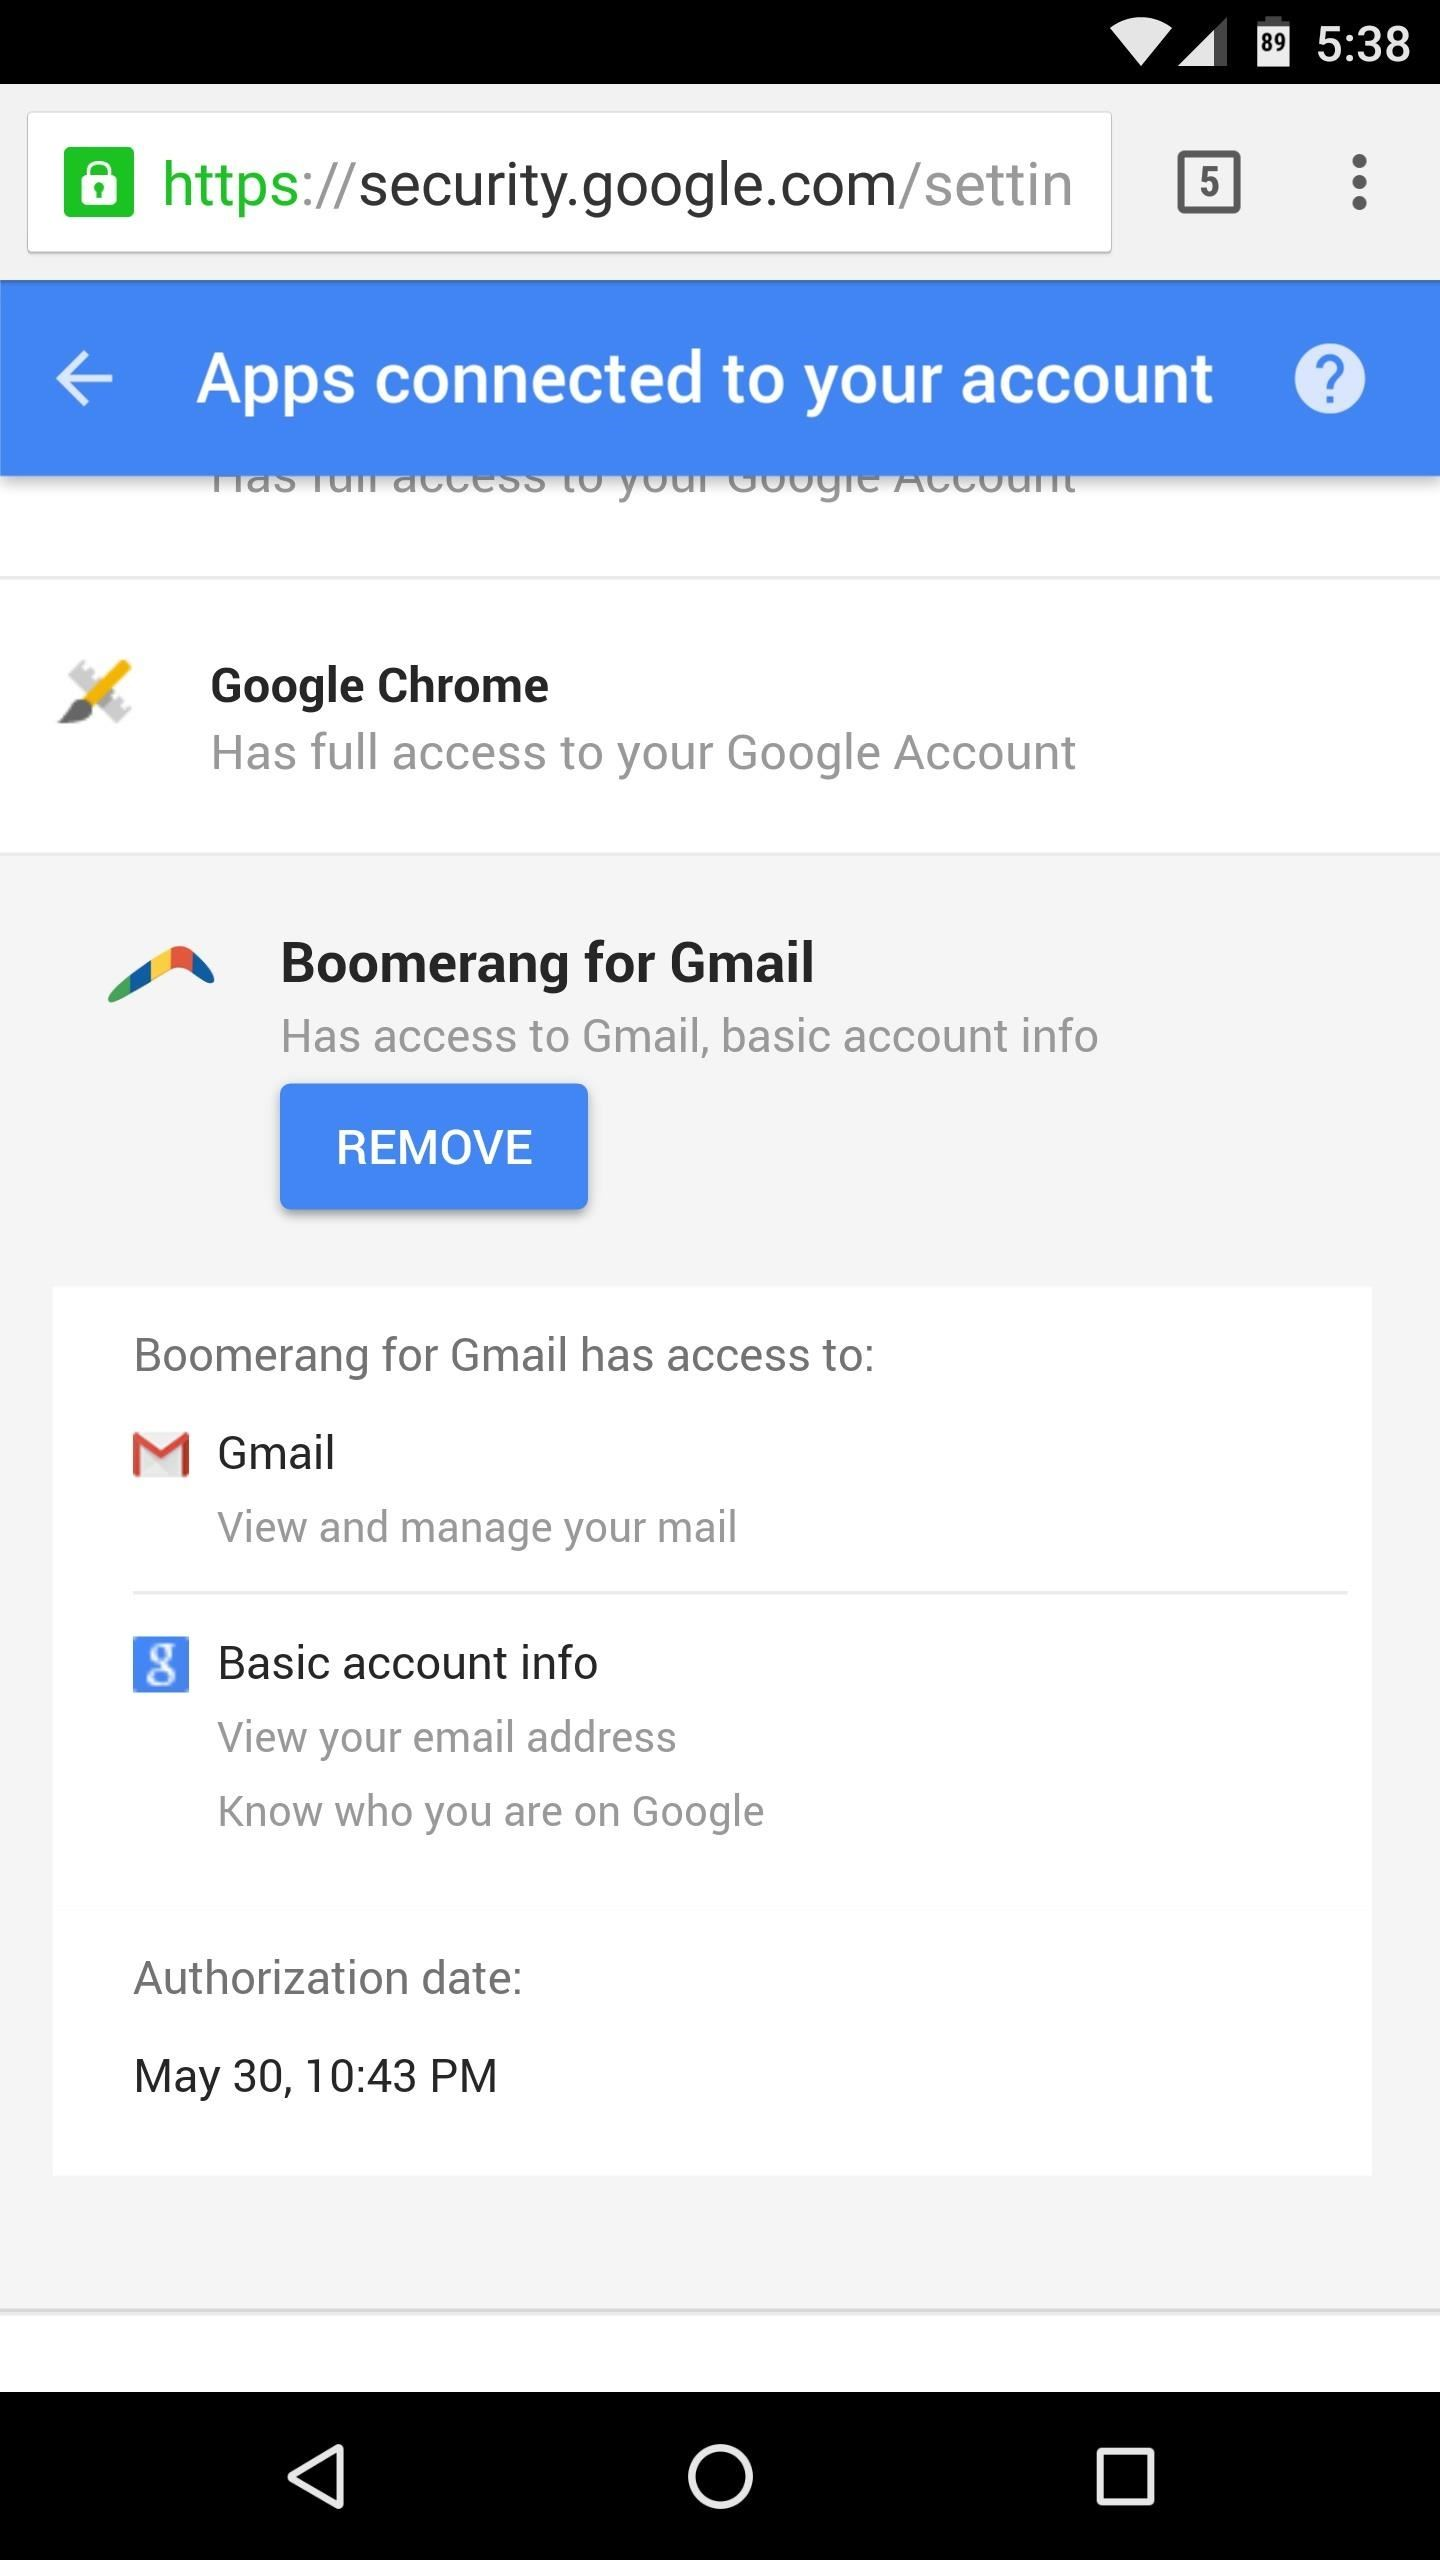 How to Stop Apps from Accessing Your Google Account